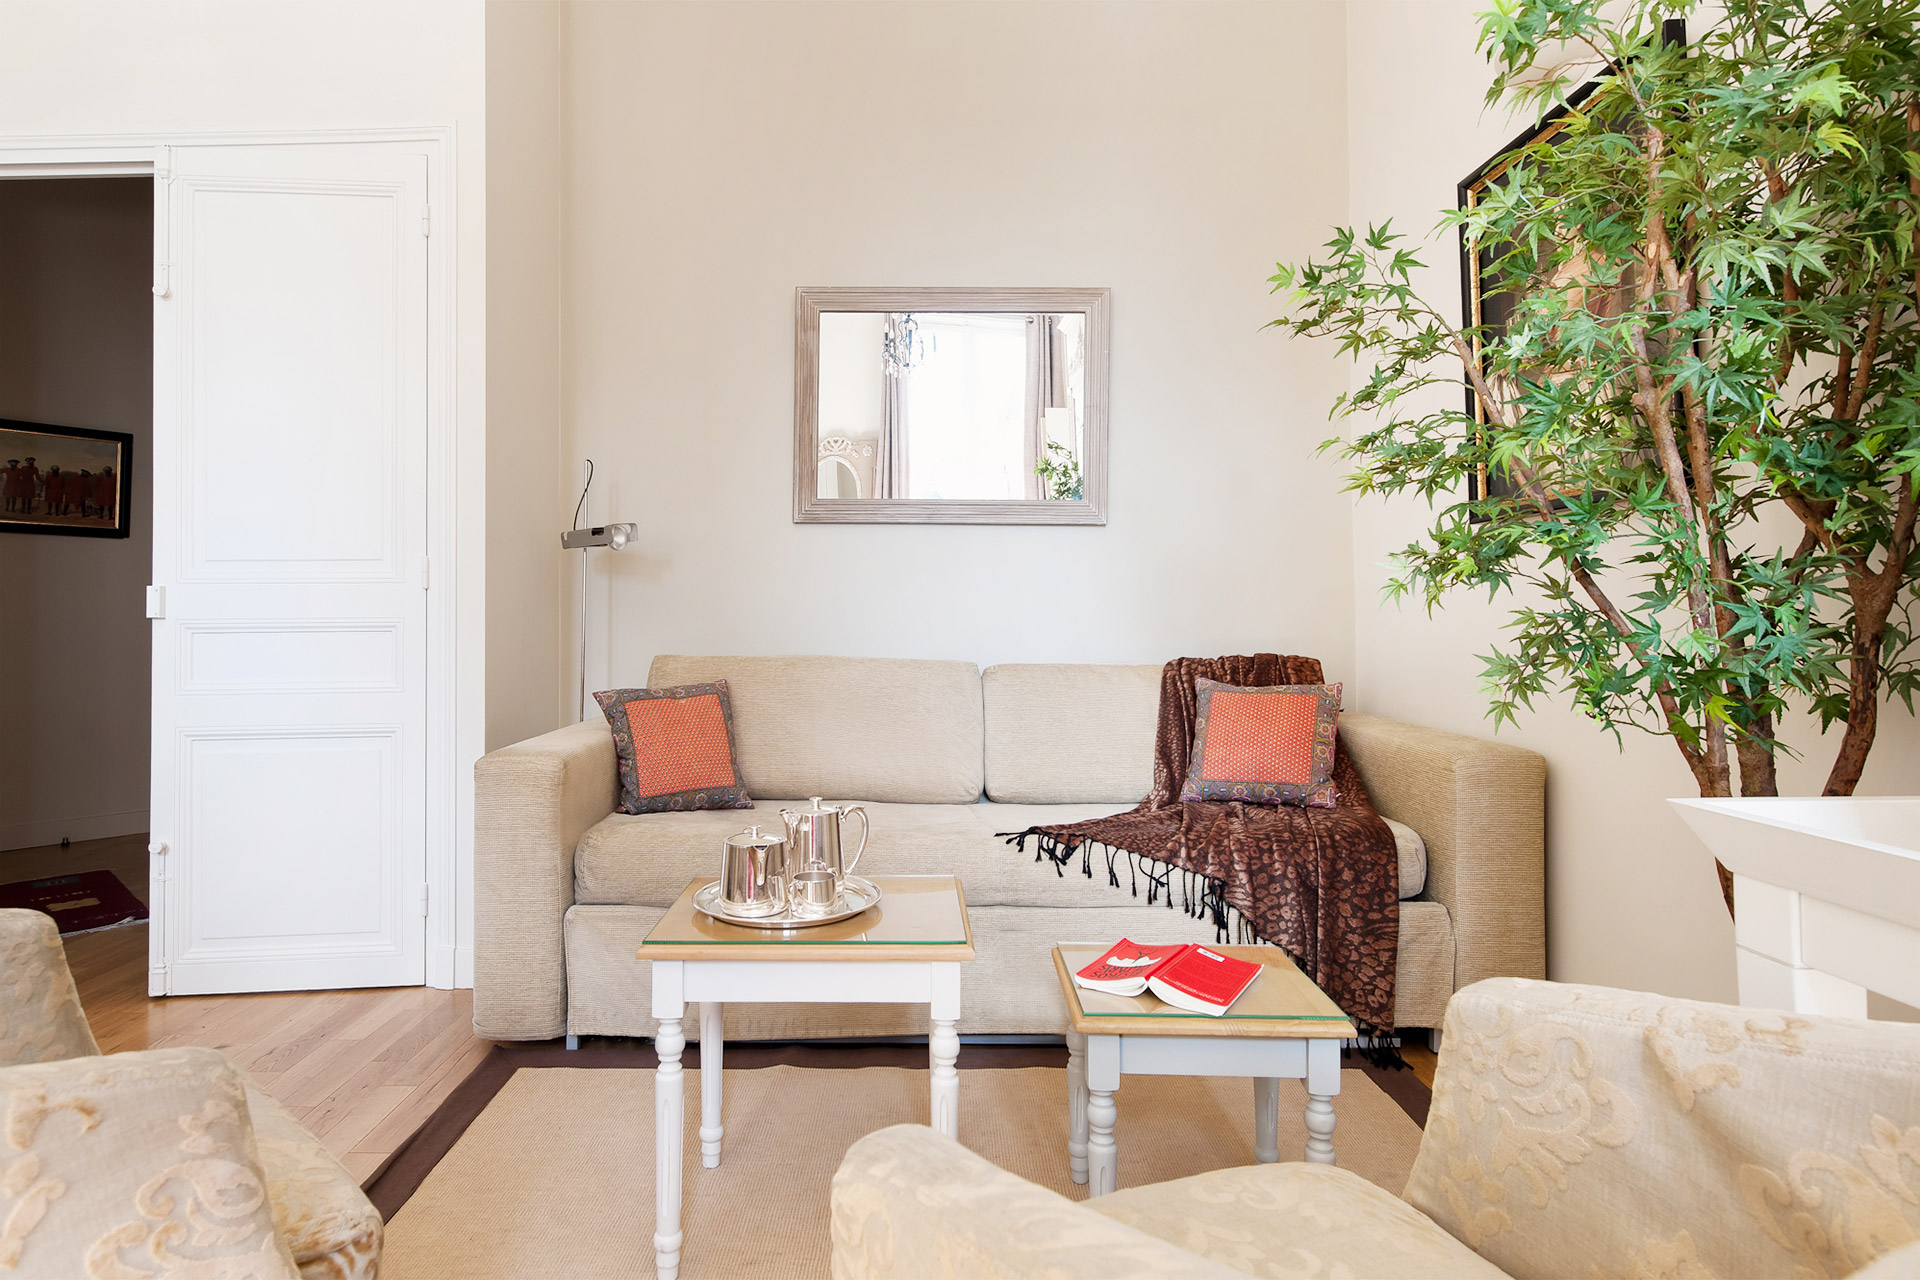 Find 2 Bedroom Saint Germain Apartments To Rent Near The